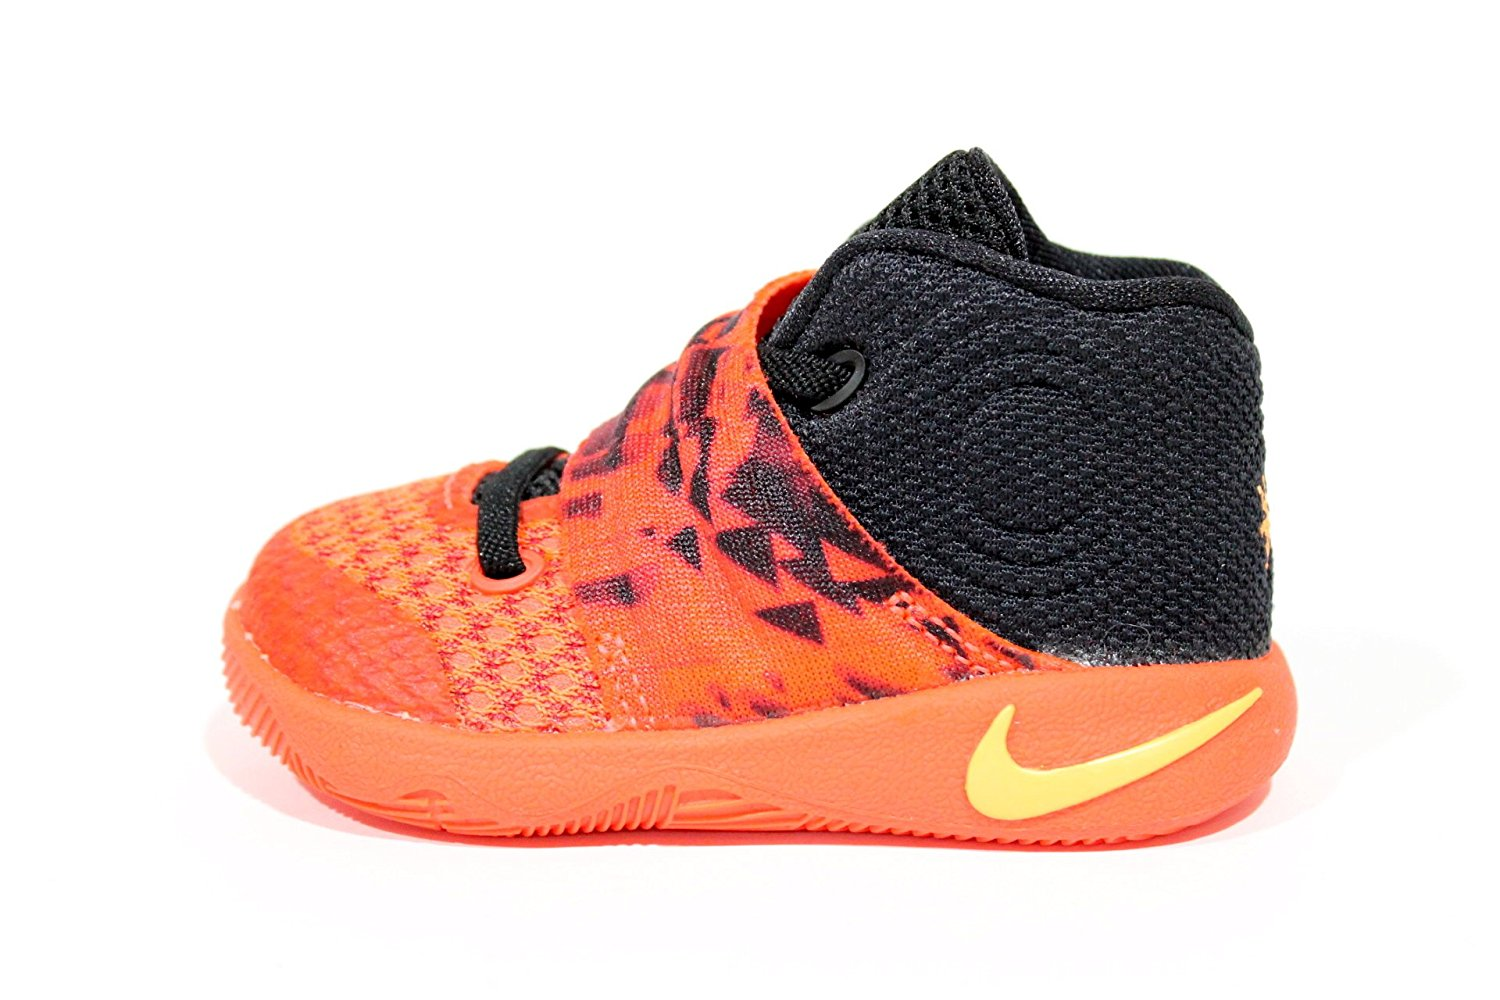 00a0b6fd026 store nike kyrie 2 td toddlers shoes bright crimson atomic orange black  827281 680 3 m us walmart 0e6e5 8ddaa  wholesale nike toddler kyrie 2 td 4c  inferno ...